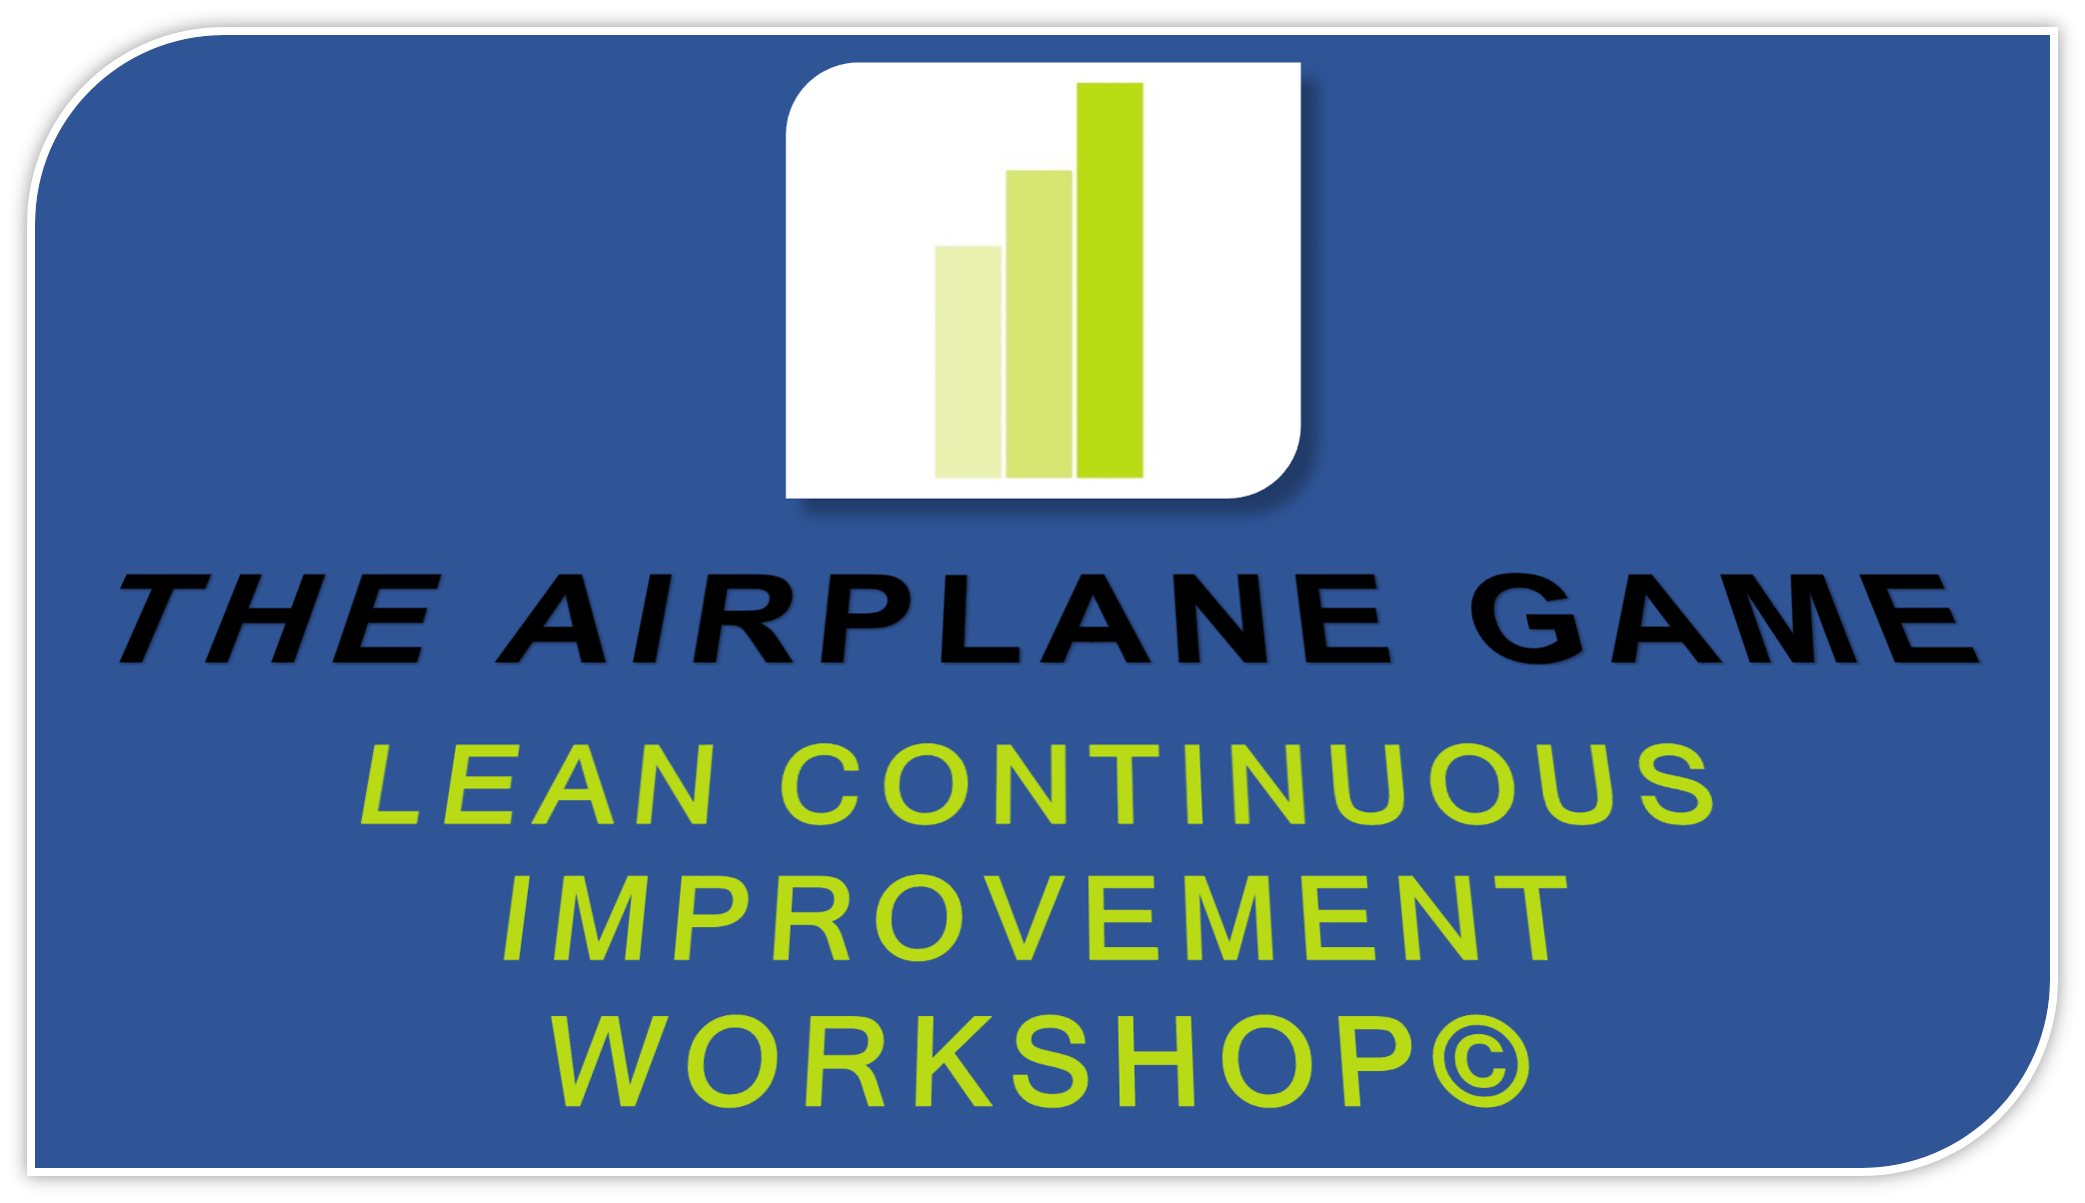 The Airplane Game Lean Continuous Improvement Workshop (C)